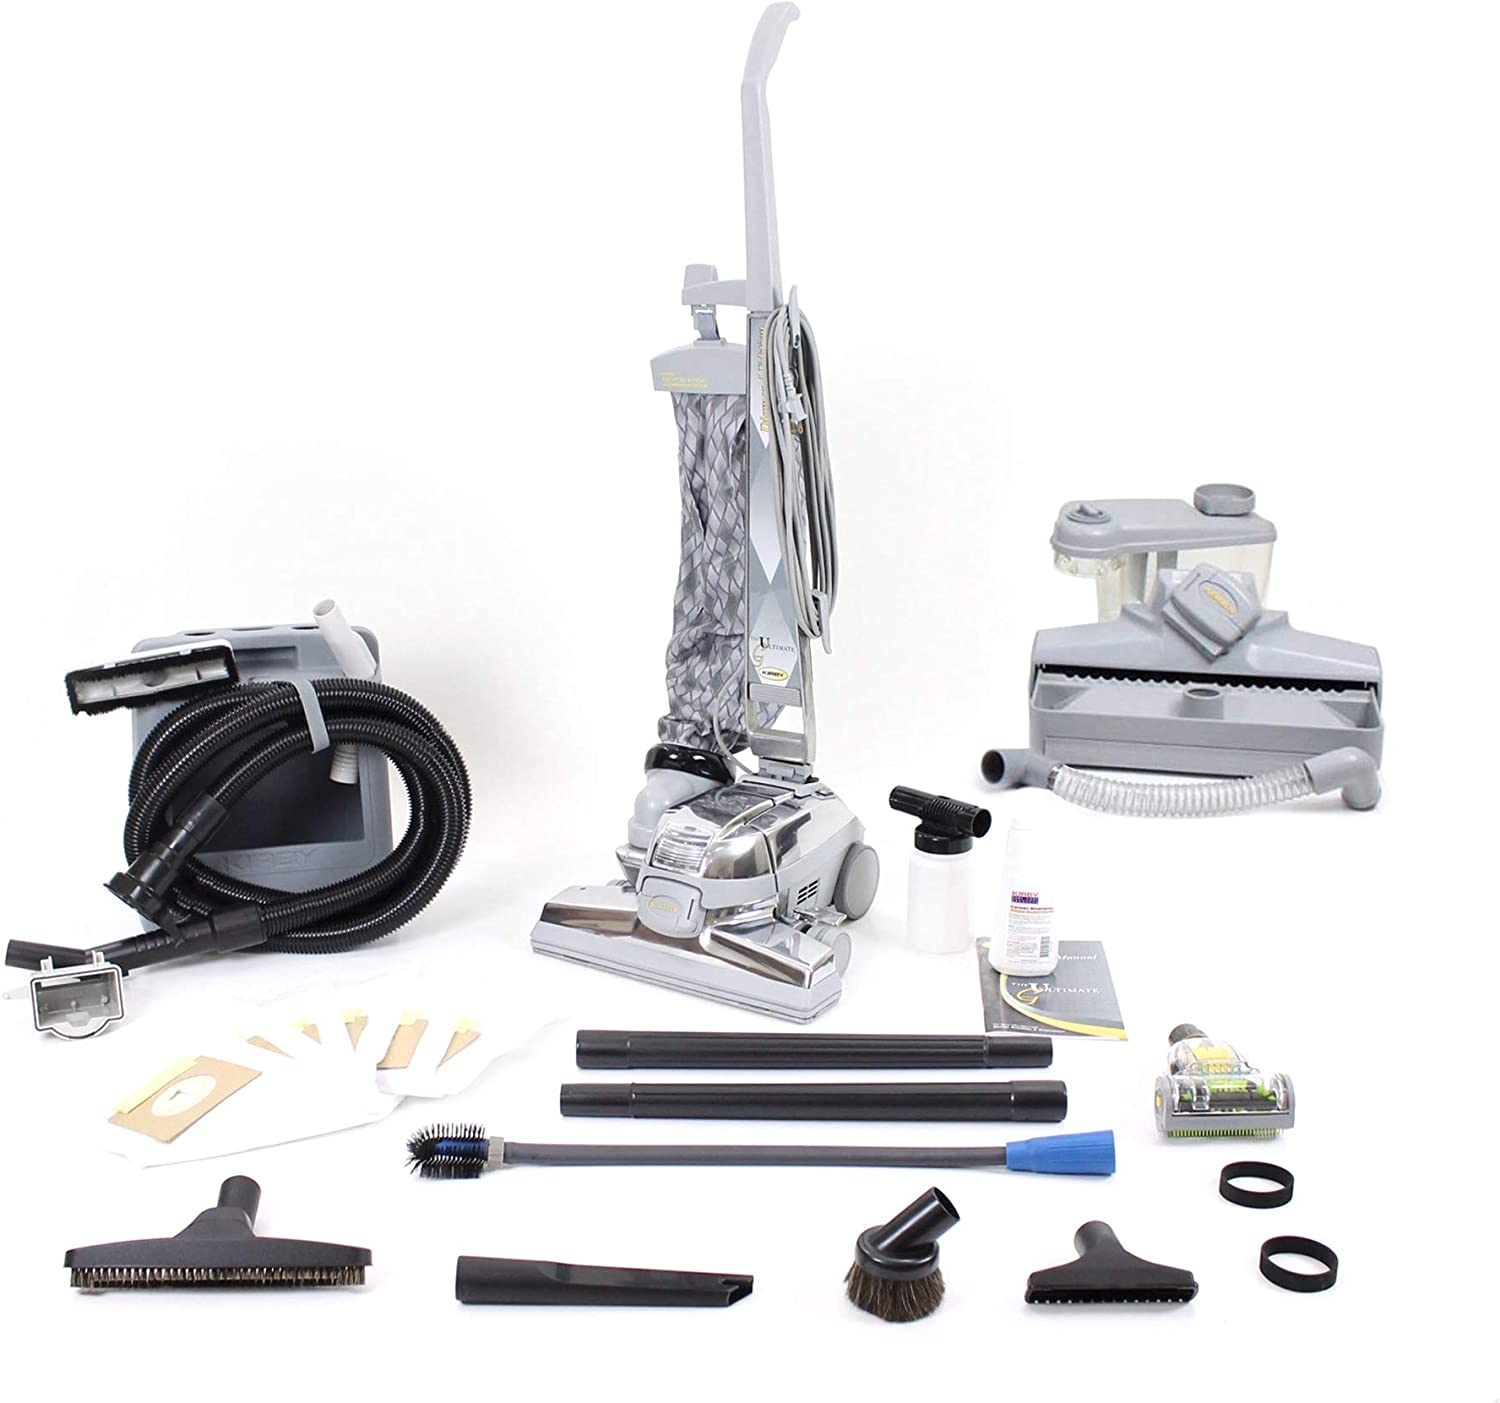 29.8 Hg Vacuum Rating 85 PSI Maximum Pressure 1 ID 1 Aluminum Cam And Groove Connection 25 Length Unisource 1500 Clear PVC Suction//Discharge Hose Assembly